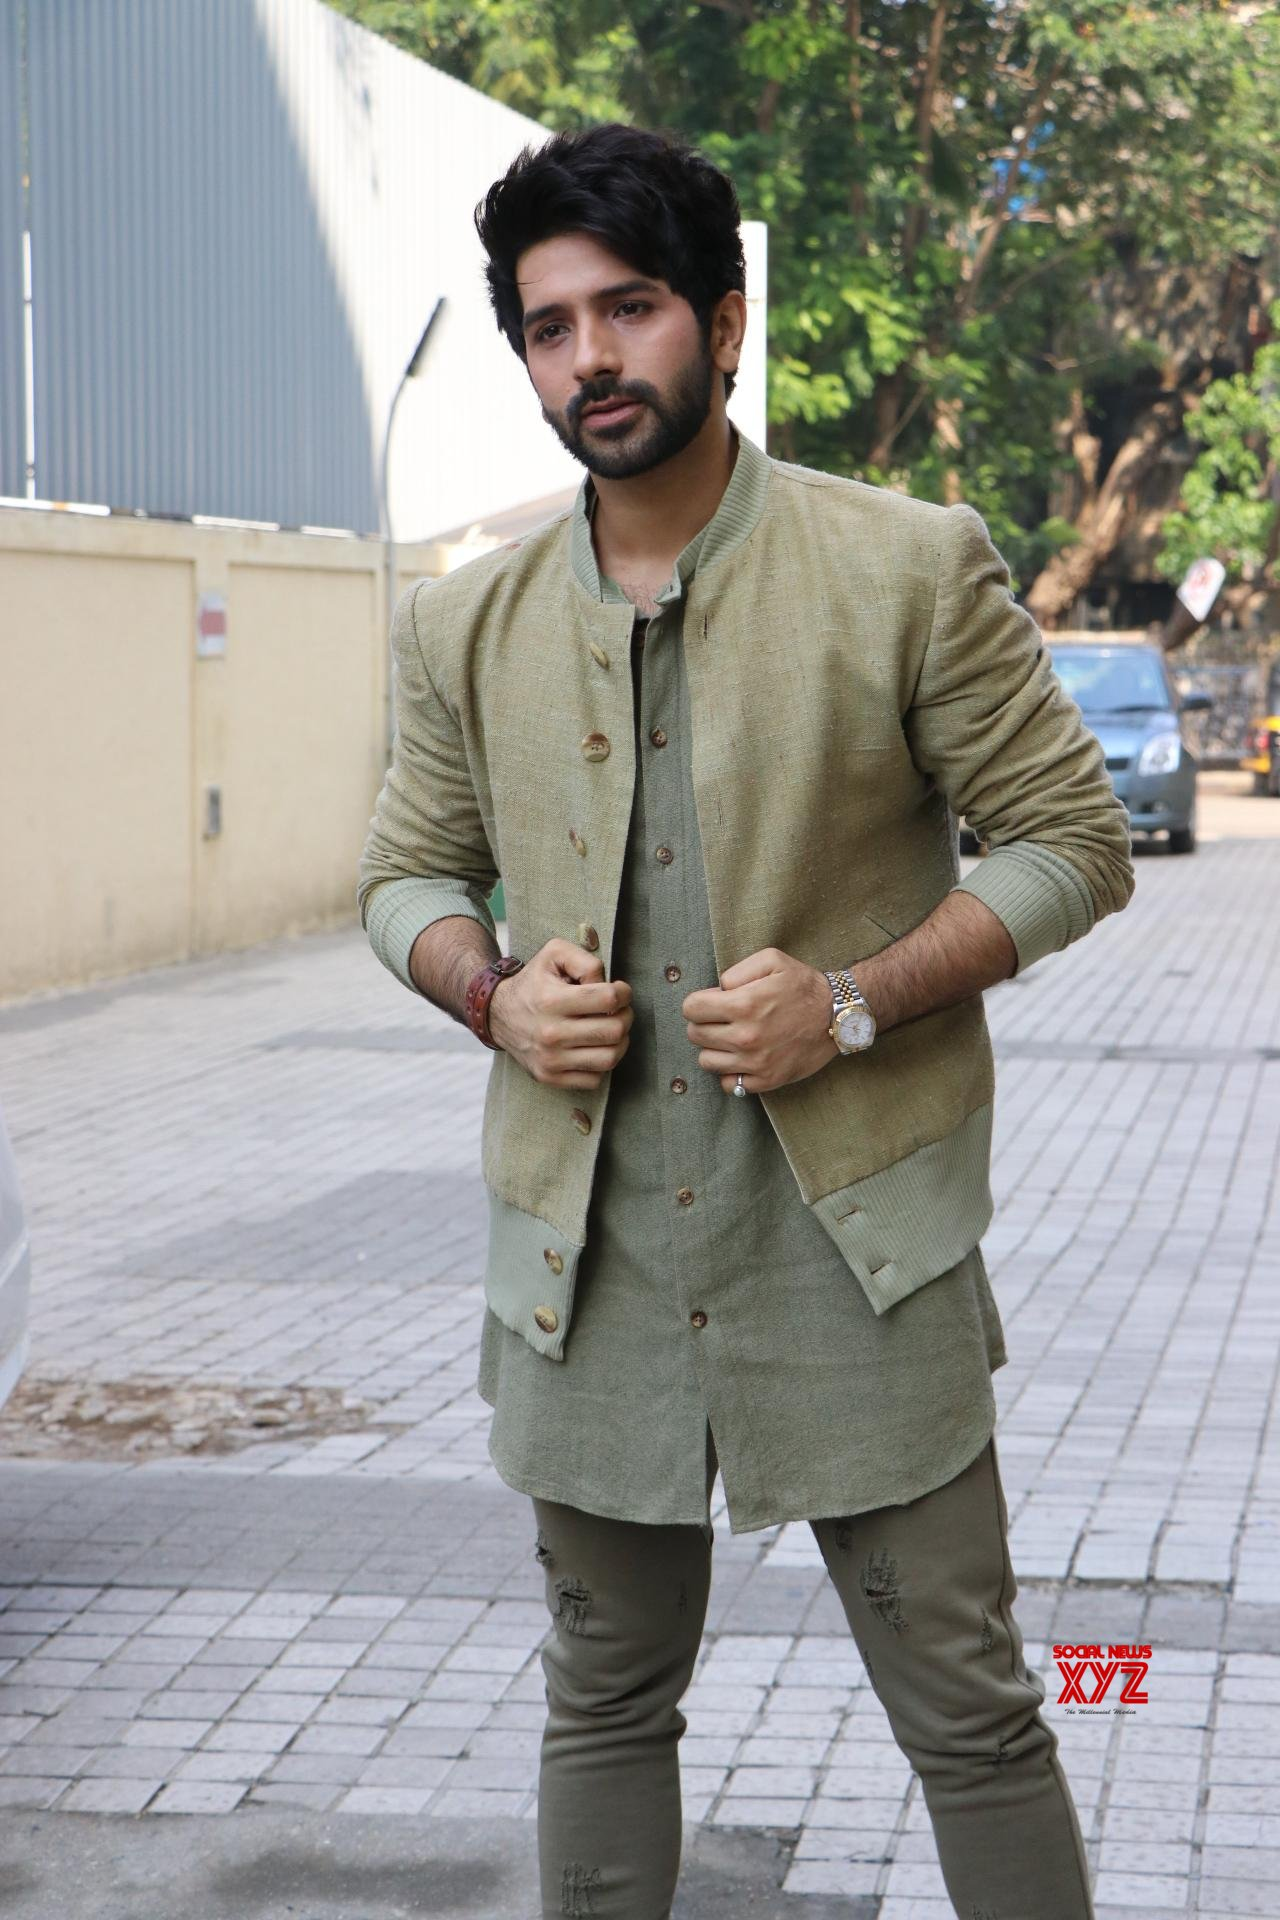 Vardhan Puri And Shivaleeka Oberoi Stills From Yeh Saali Aashiqui Movie Promotions